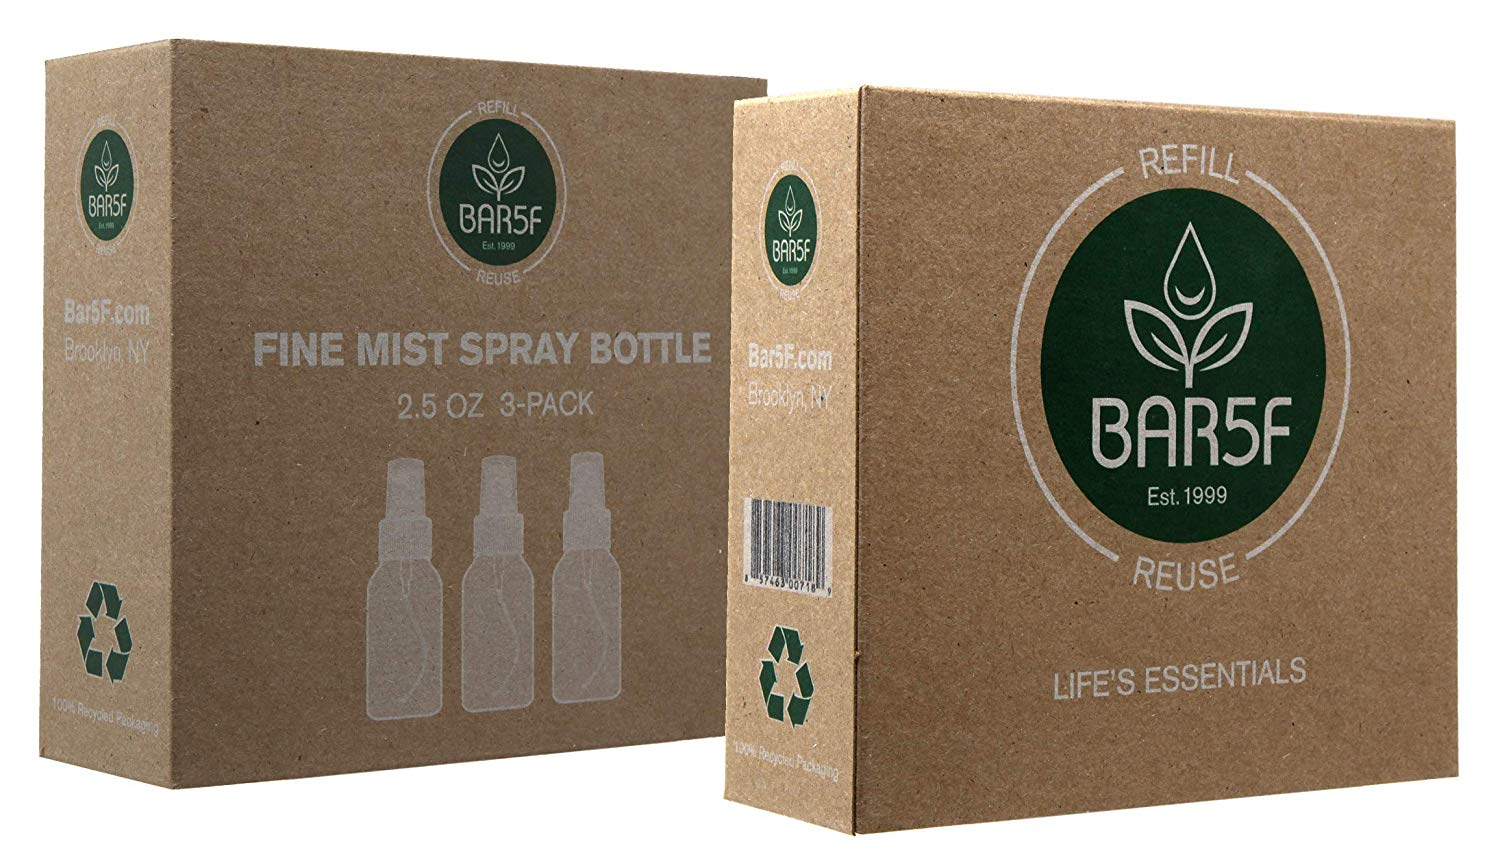 Bar5F Fine Mist Spray Bottle, 2.5 OZ (Pack of 3)